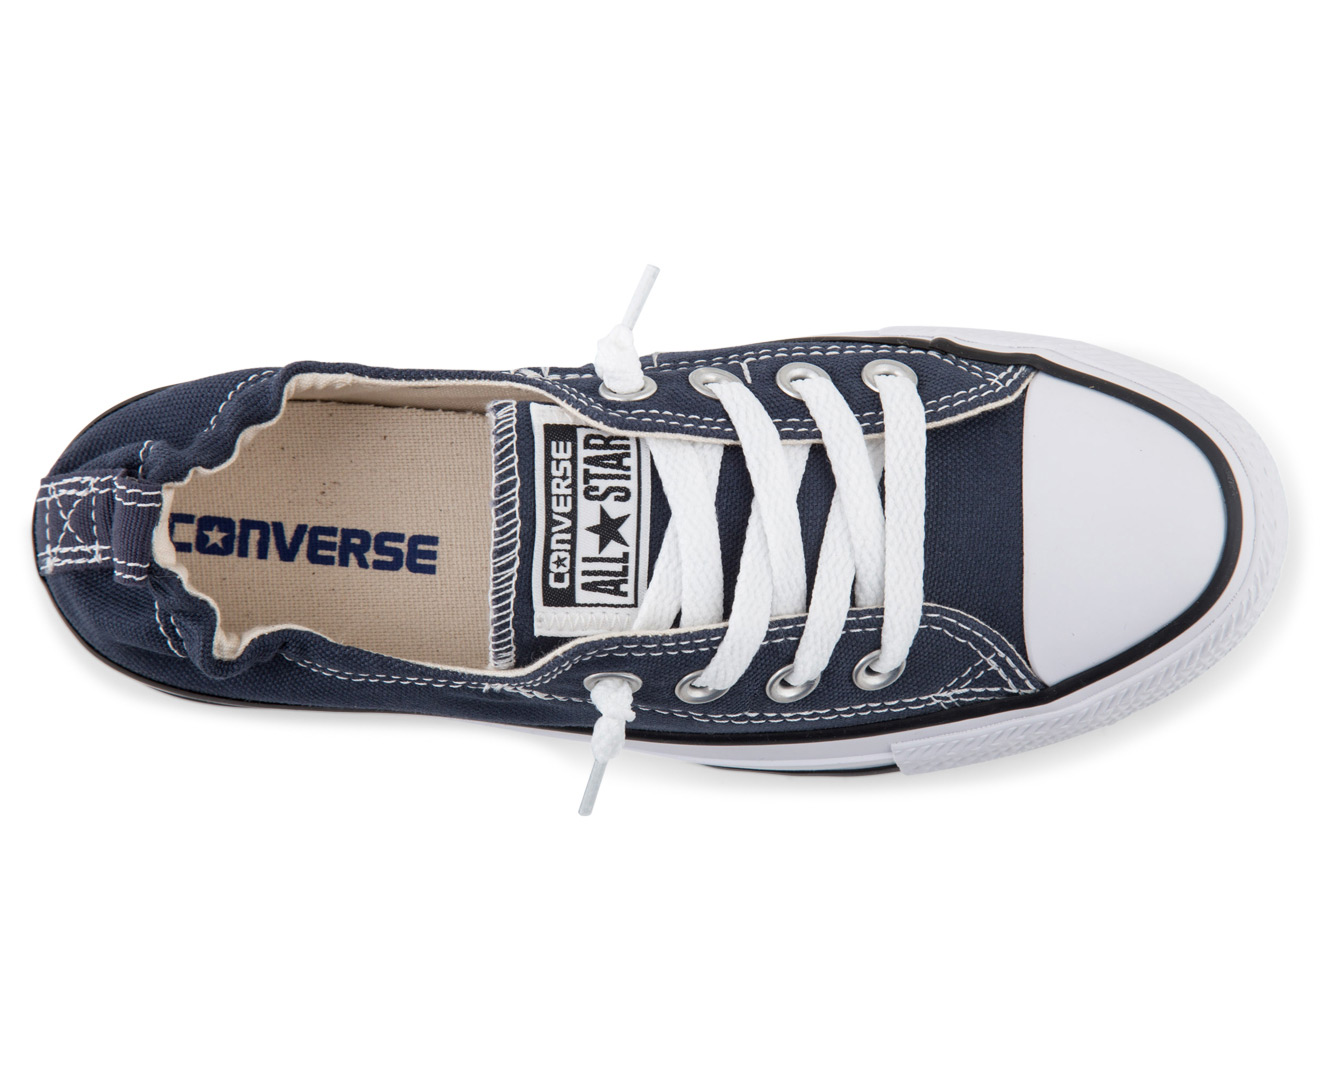 b6eccfbc976d Converse Women s Chuck Taylor All Star Shoreline Slip Sneaker - Athletic  Navy